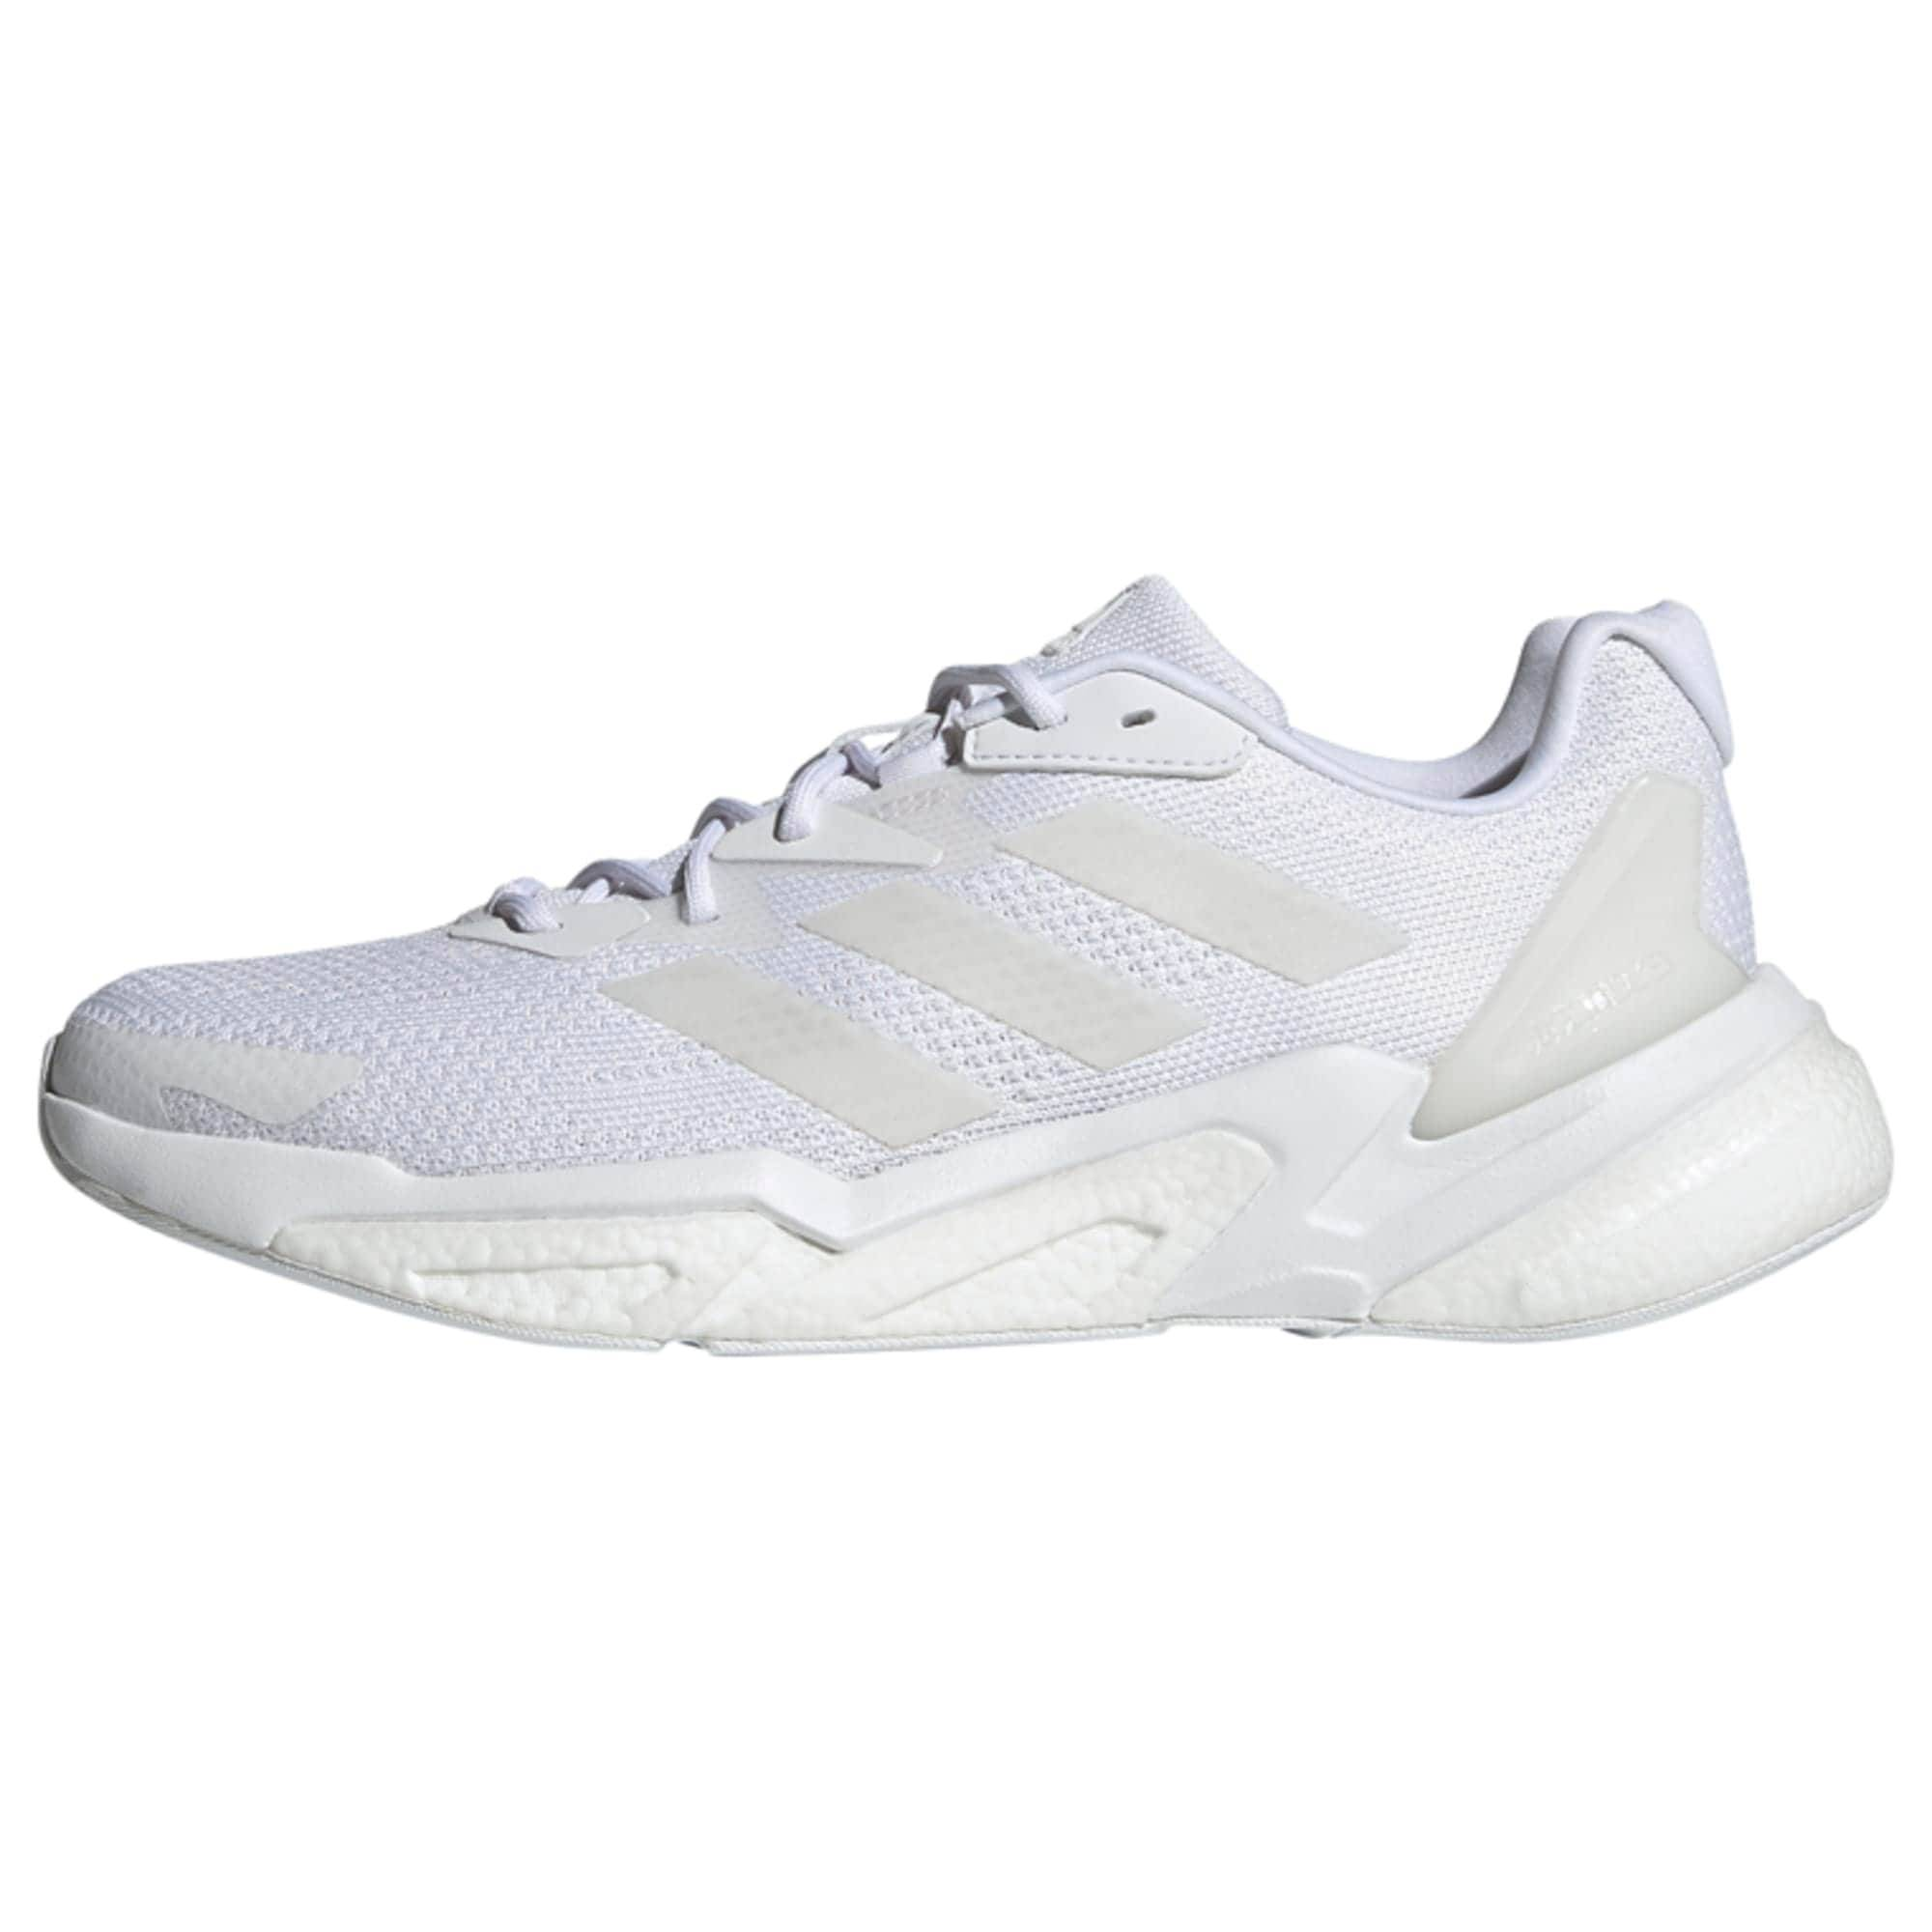 ADIDAS PERFORMANCE Chaussure de course  - Blanc - Taille: 10 - male